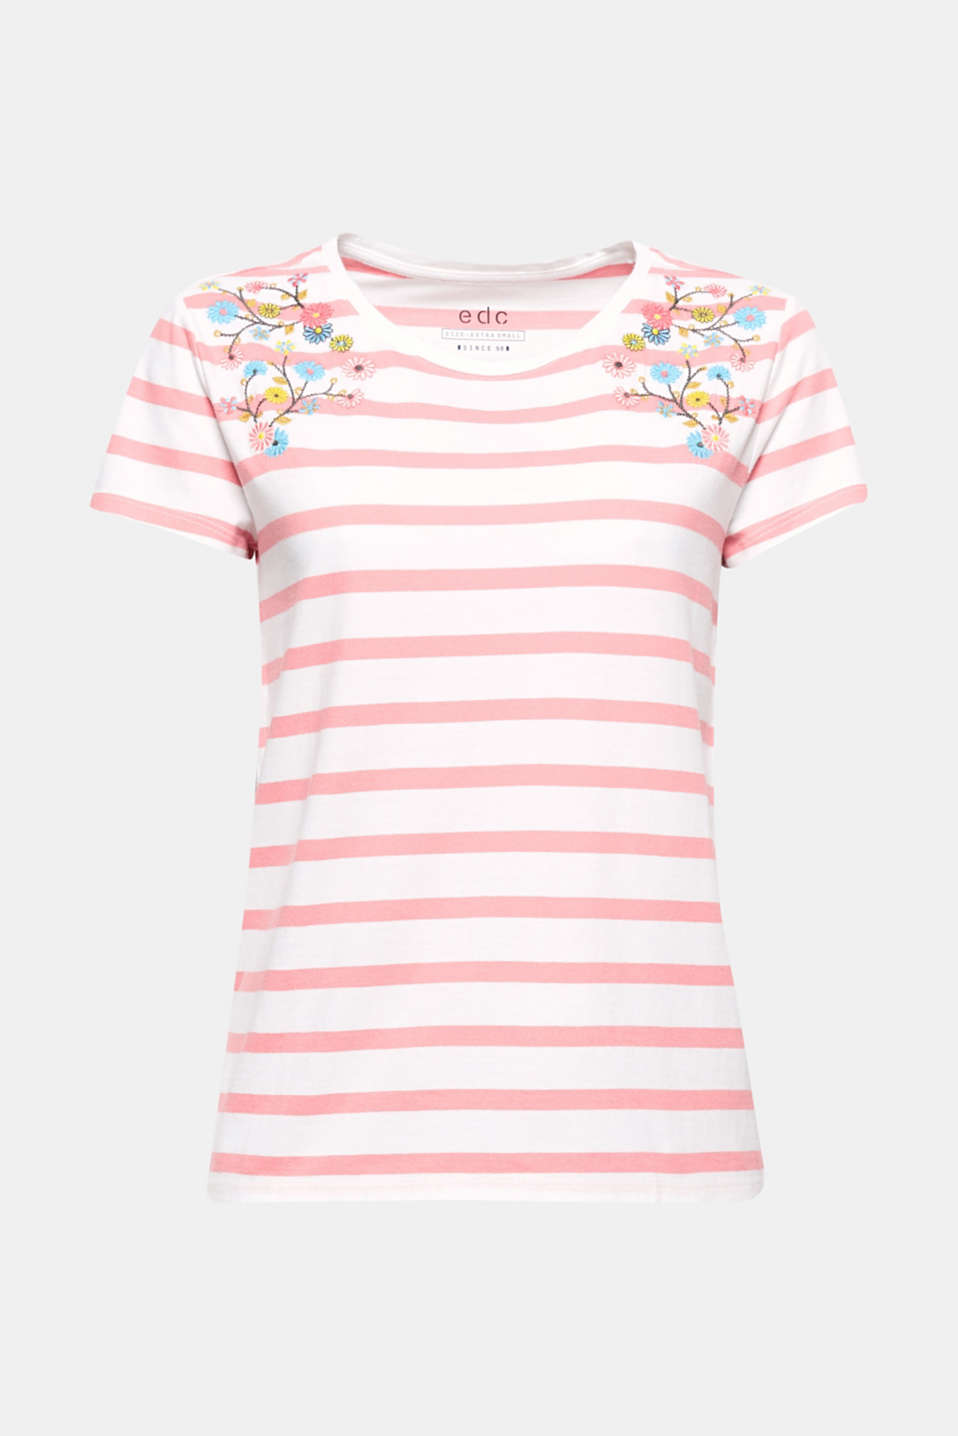 Striped pattern meets colourful flowers! This striped cotton top is a head-turner thanks to its floral embroidery.